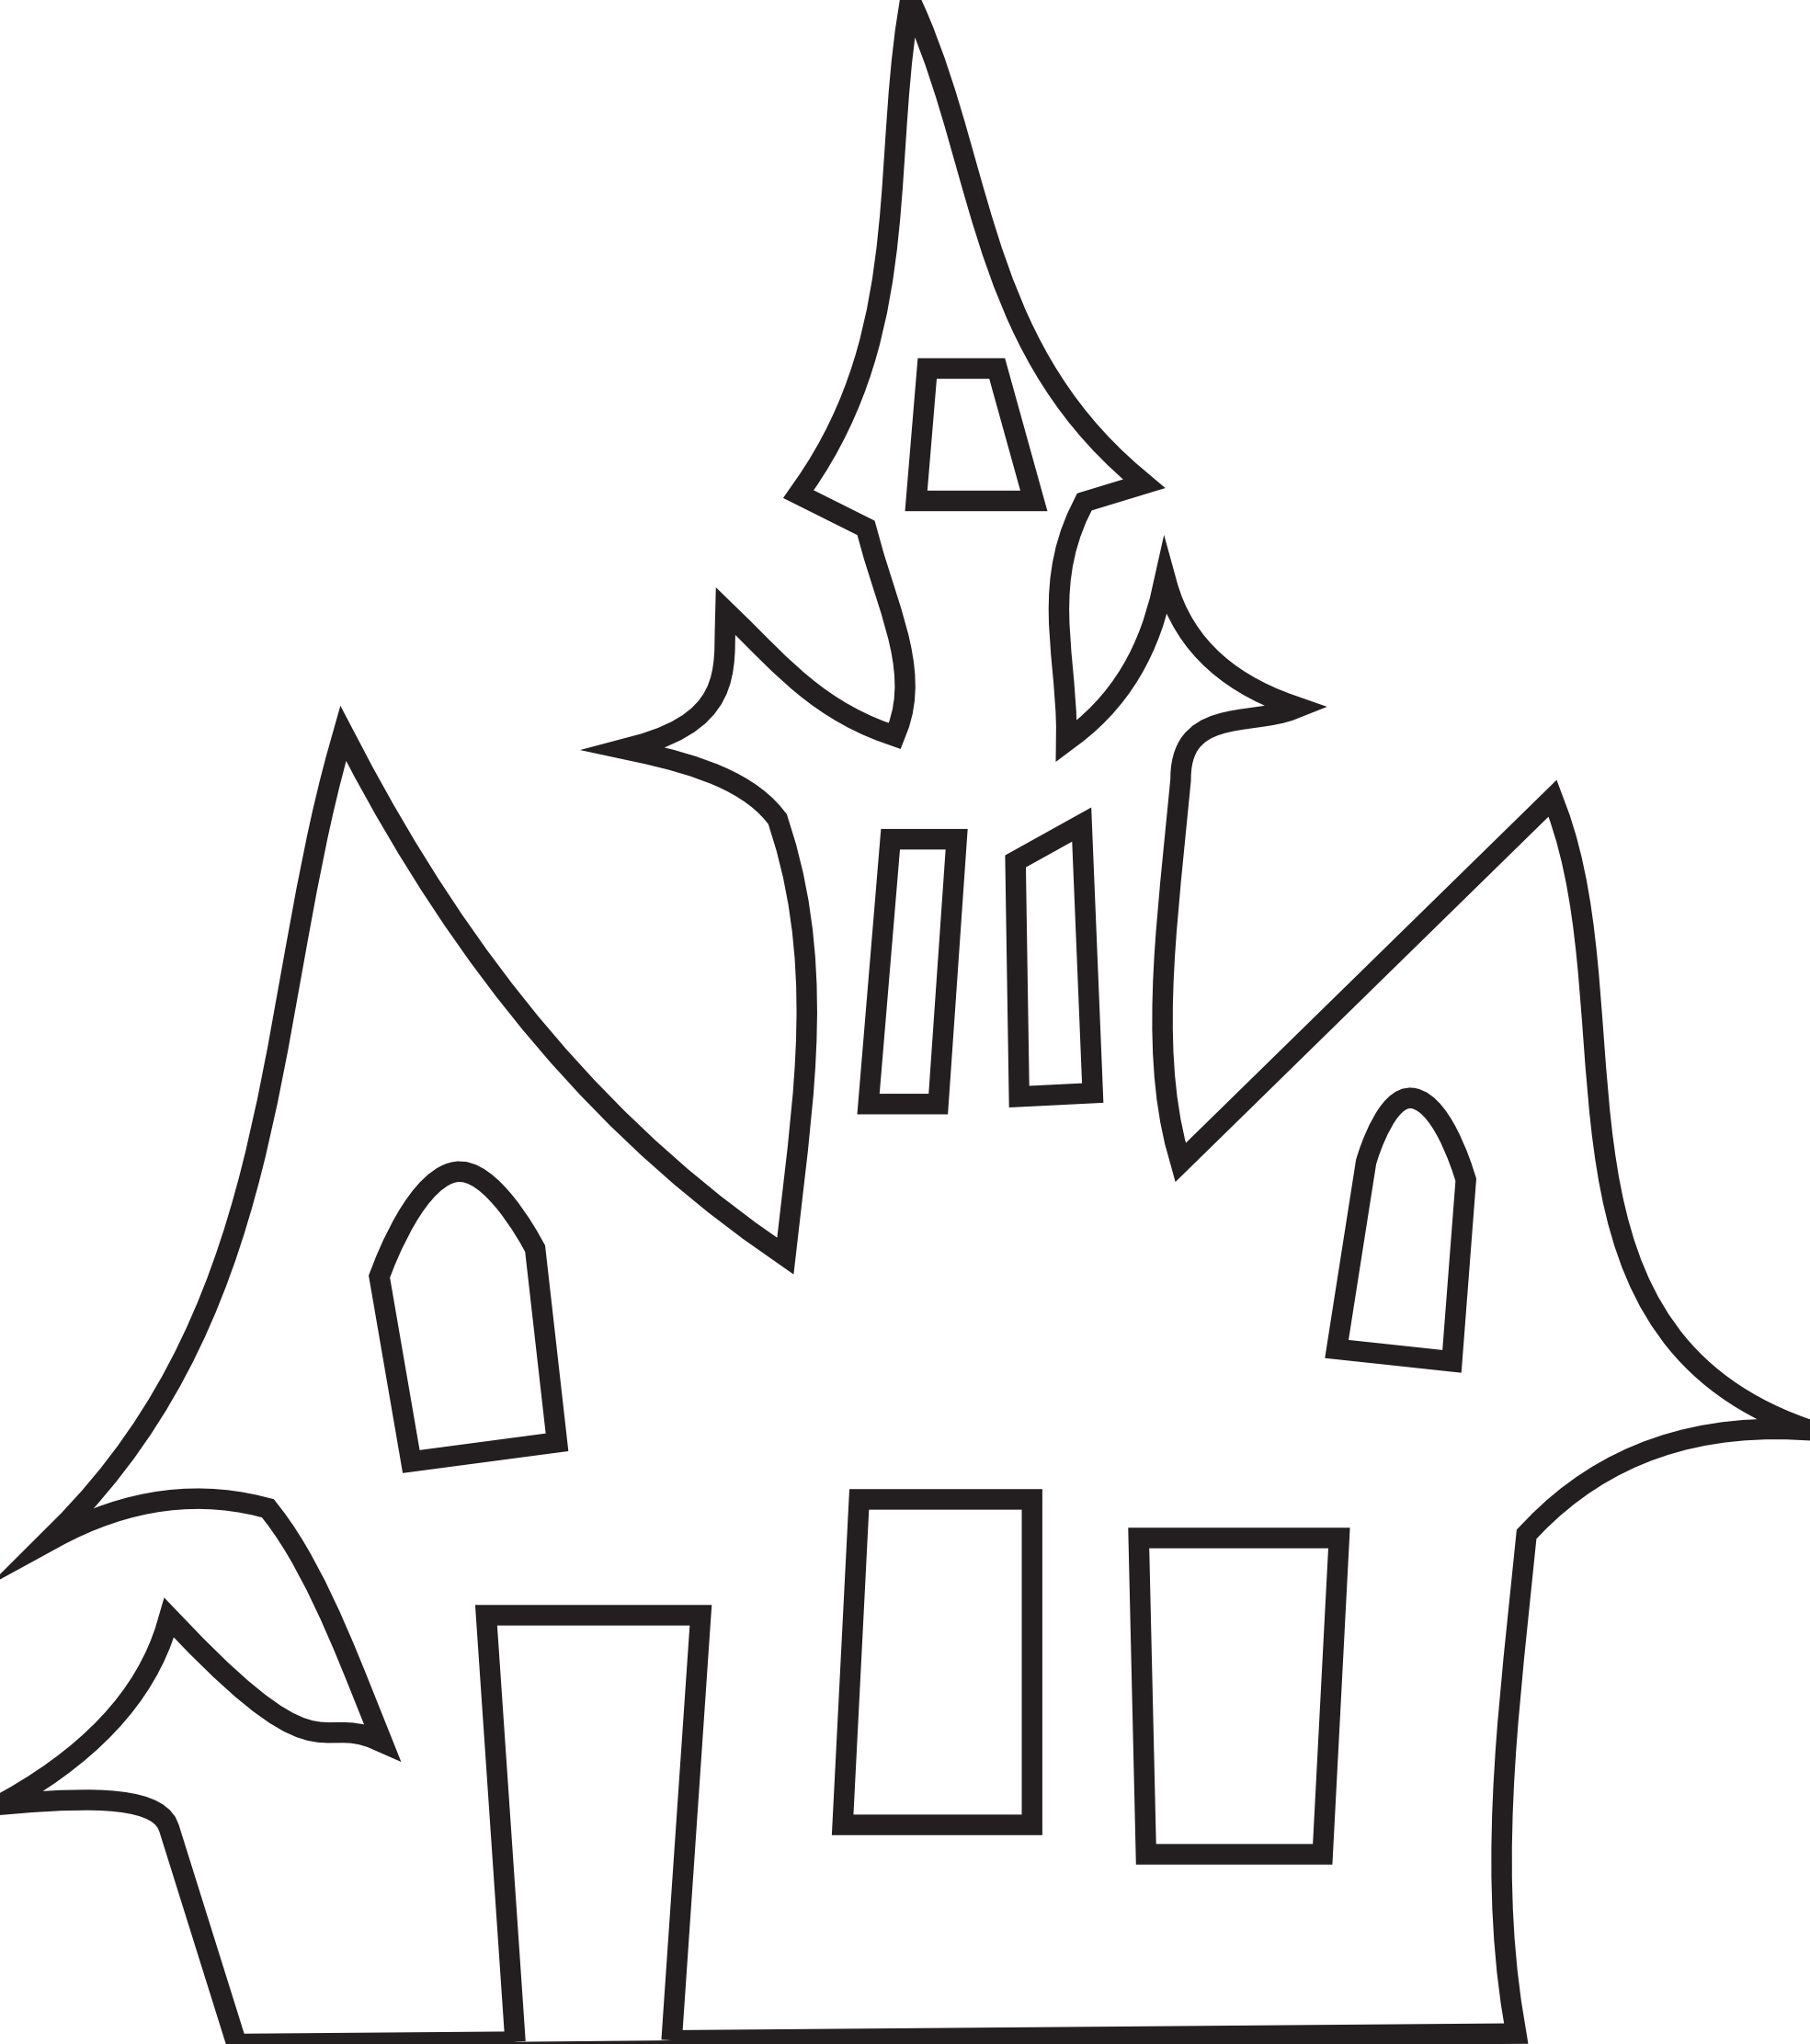 Clipart halloween potluck. House black and white